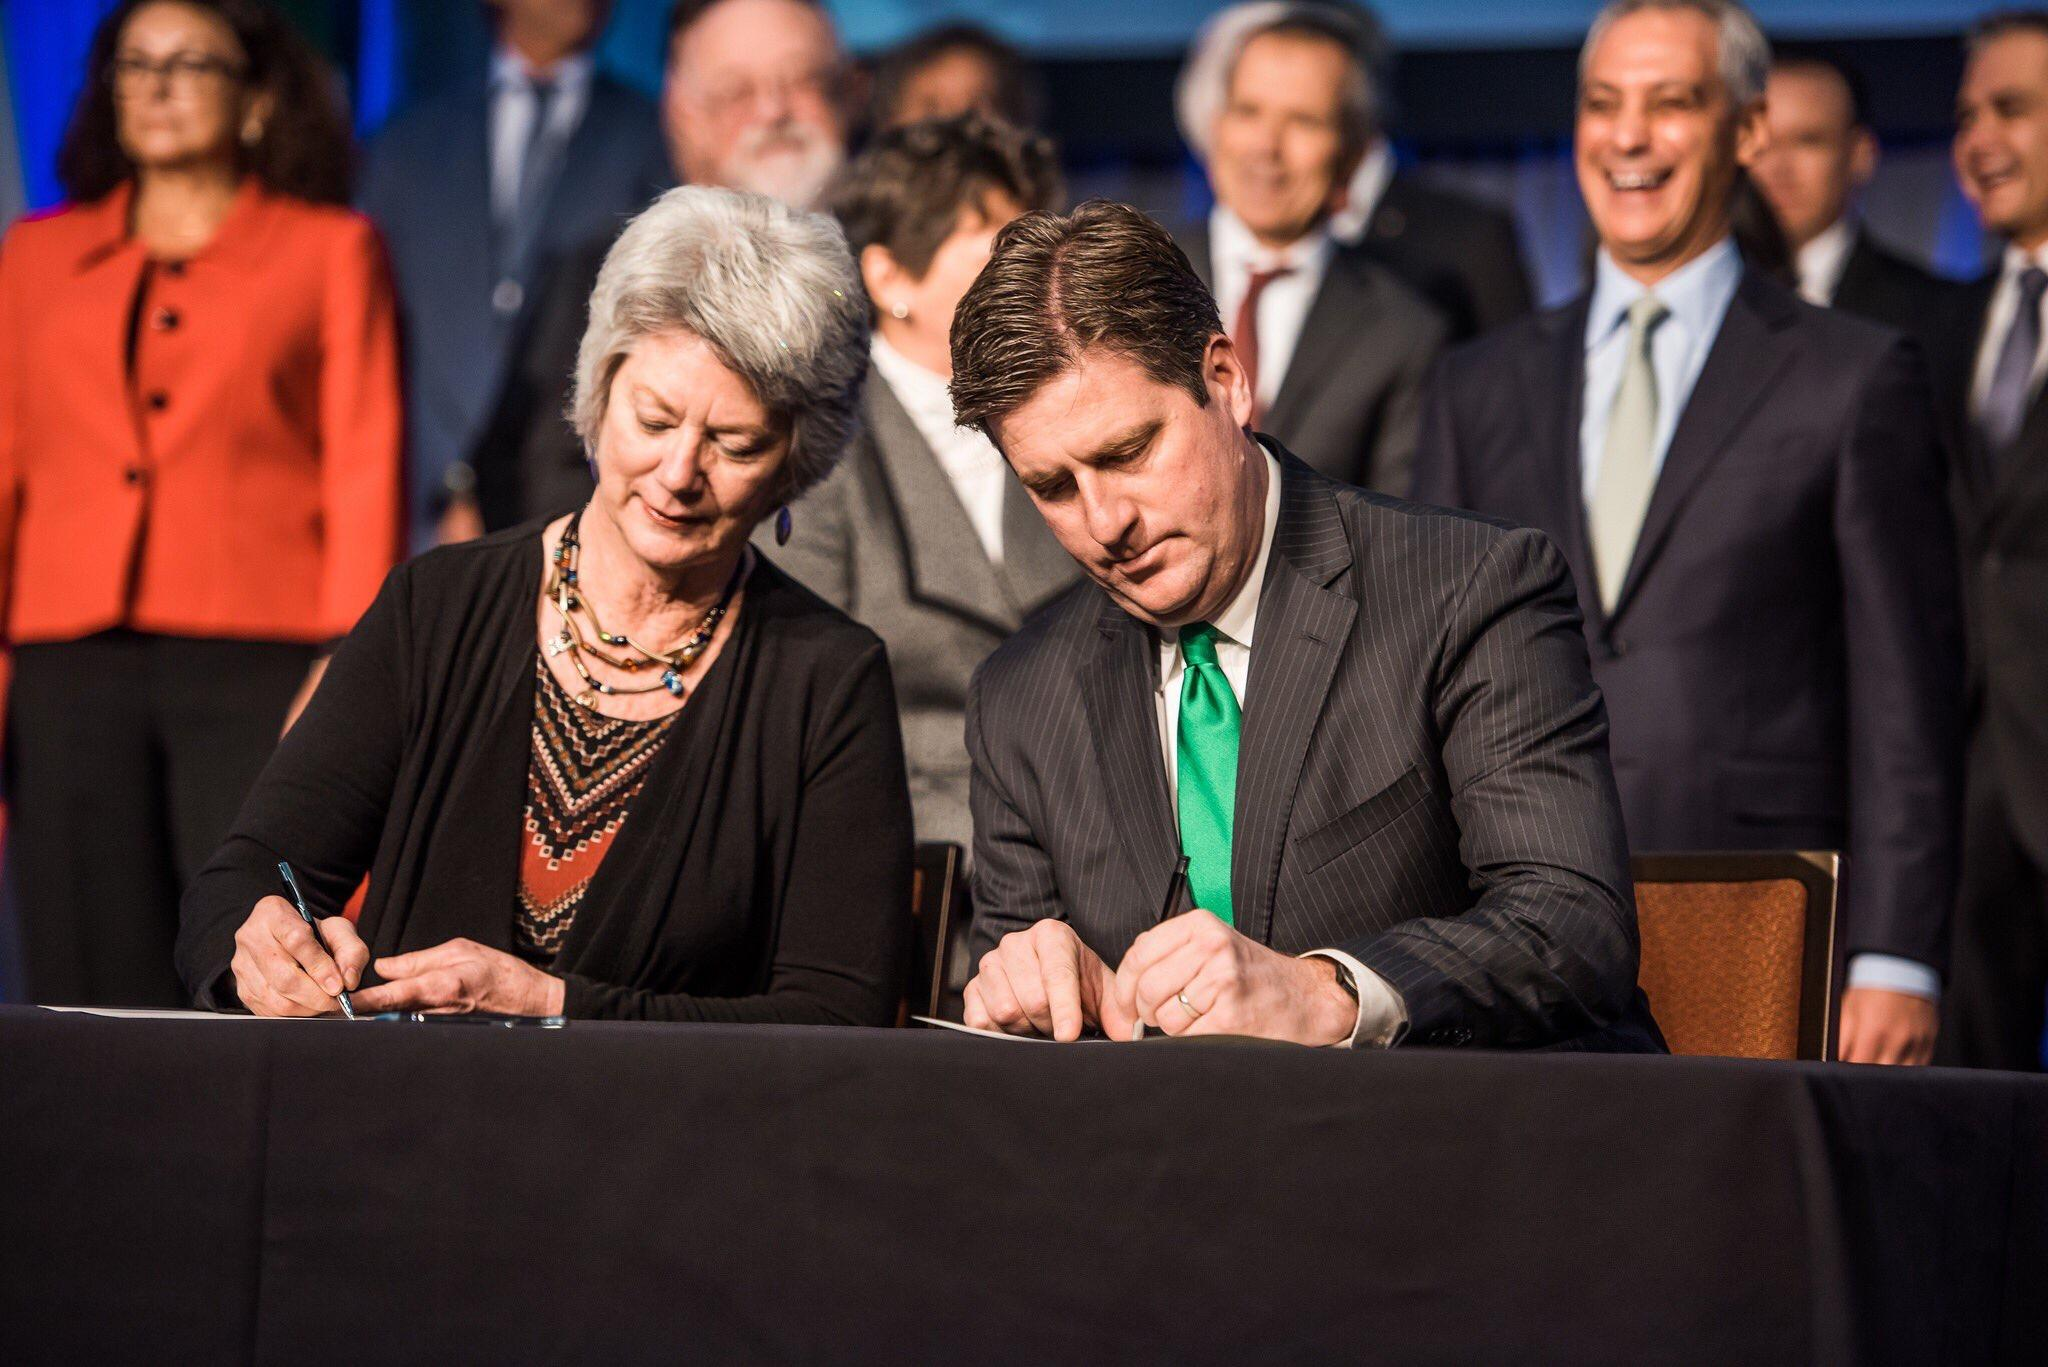 Pittsboro, N.C. Mayor Cindy Perry and Pittsburgh Mayor Bill Peduto sign the Chicago Climate Charter on Tuesday. (Courtesy City of Pittsburgh)